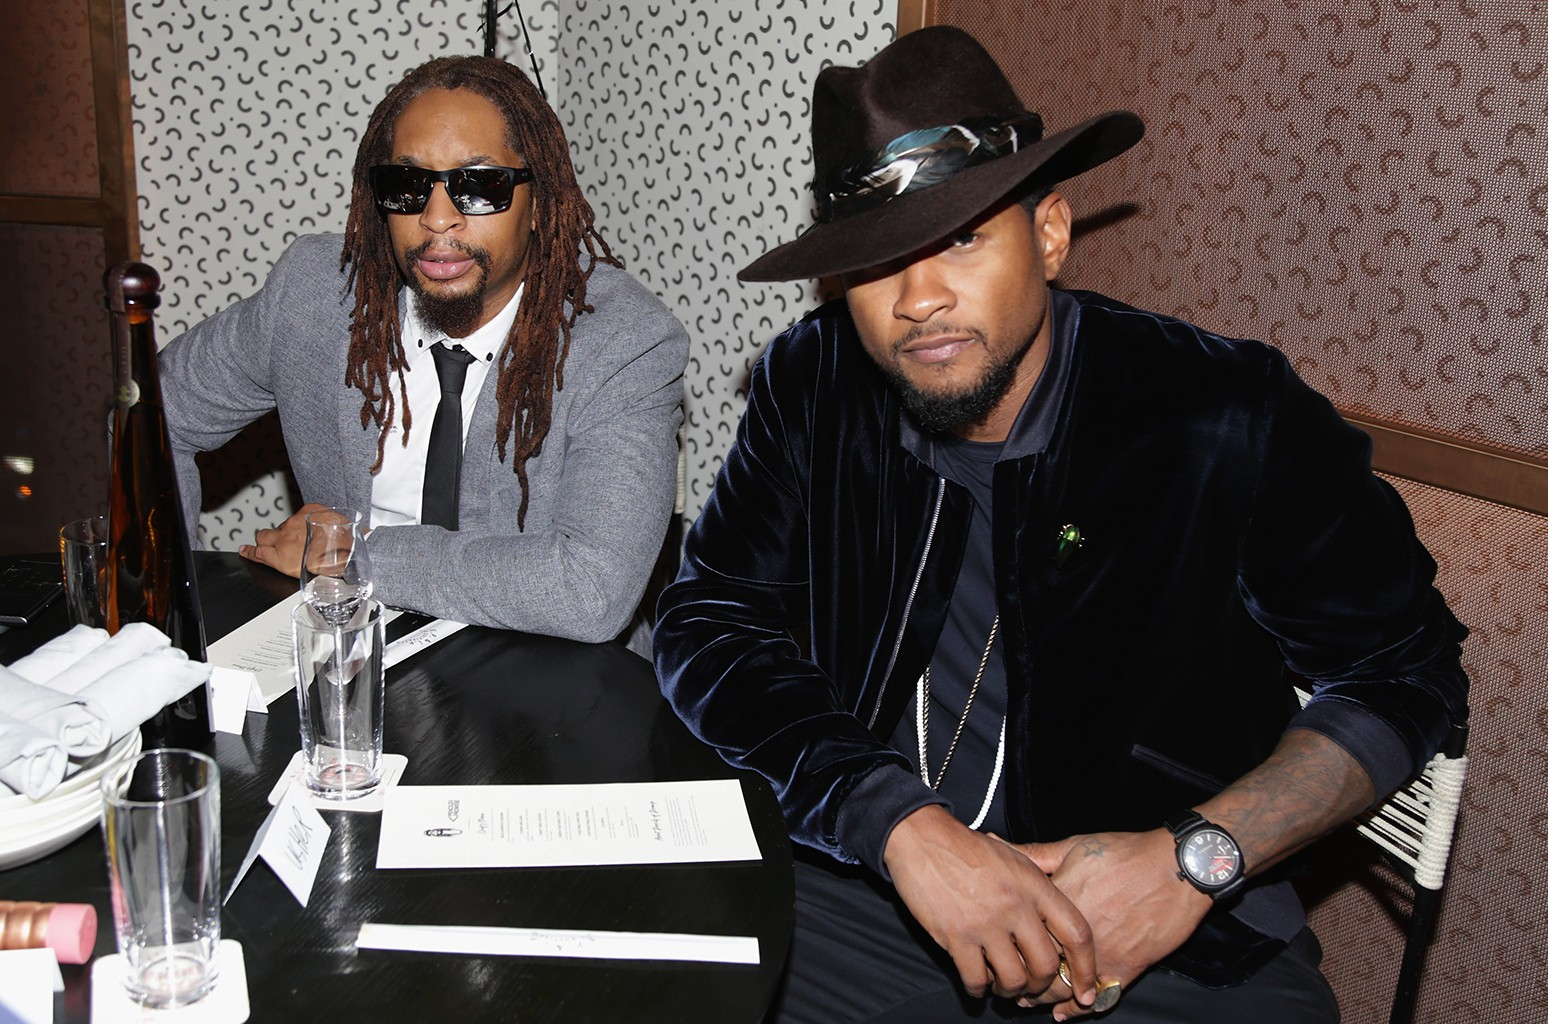 Lil Jon and Usher attend Lil Jon's Birthday Dinner For Pencils Of Promise at E.P. & L.P. on Jan. 24, 2017 in West Hollywood, Calif.